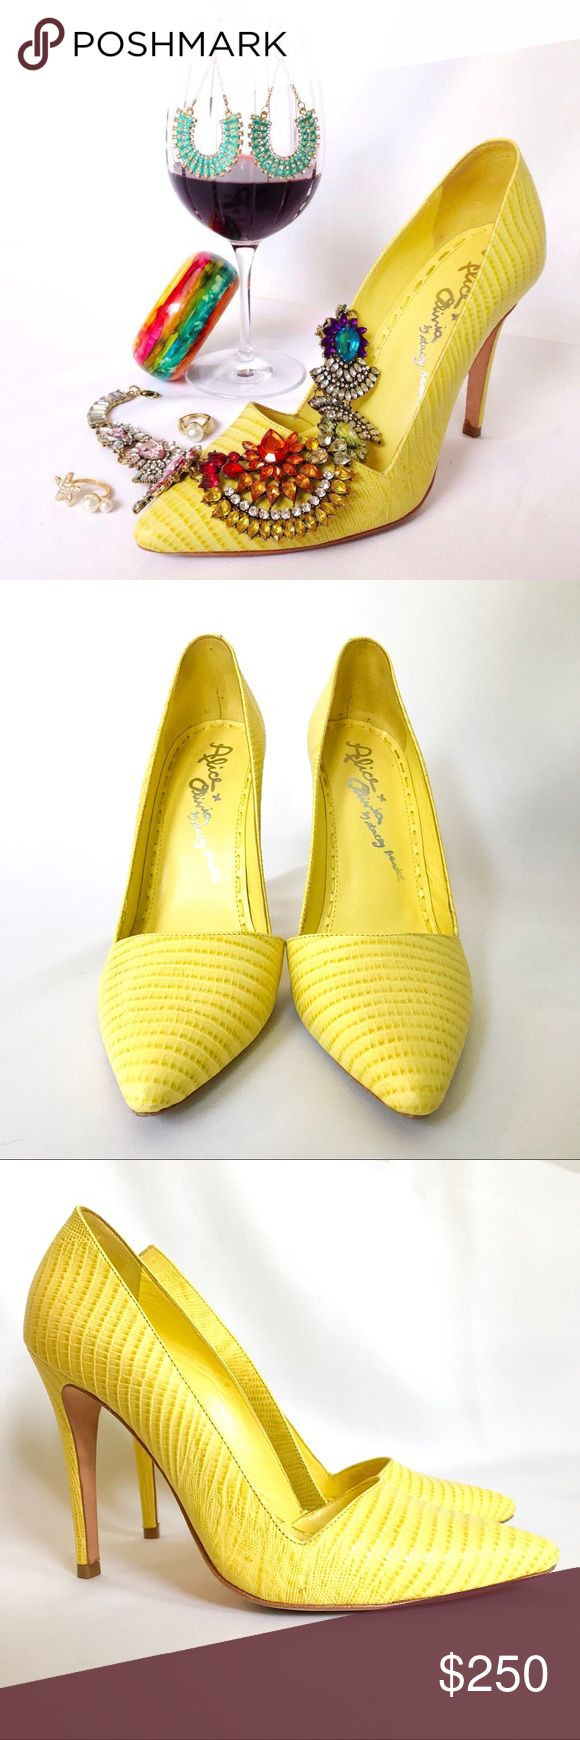 Alice + Olivia snakeskin heels Alice + Olivia yellow snakeskin heels.  Only worn a few times.  Great condition! Alice + Olivia Shoes Heels